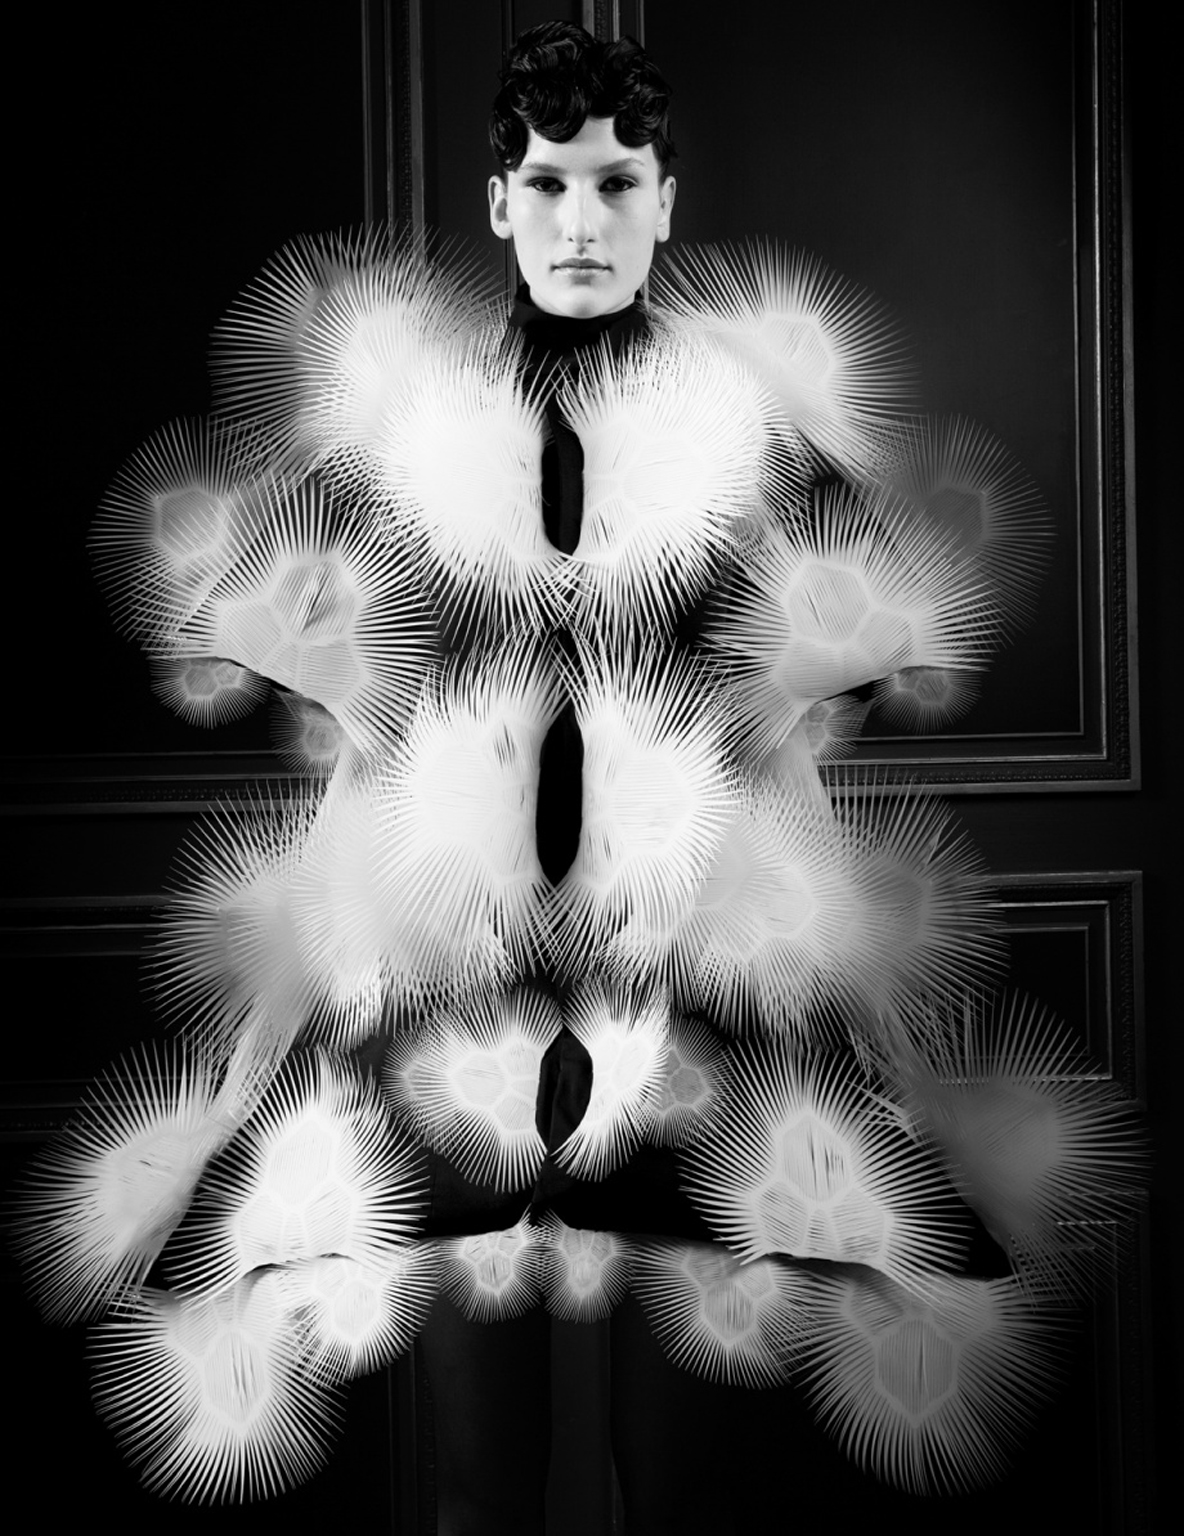 Voltage shot by Ronald Stoops. For the show, van Herpen collaborated with New Zealand artist Carlos Van Camp whose work involves running 3 million volts through bodies. The 3D printed dresses were created in collaboration with Neri and Keren Oxman and Professor Craig Carter of MIT with Stratasys and architect Julia Koerner with Materialise